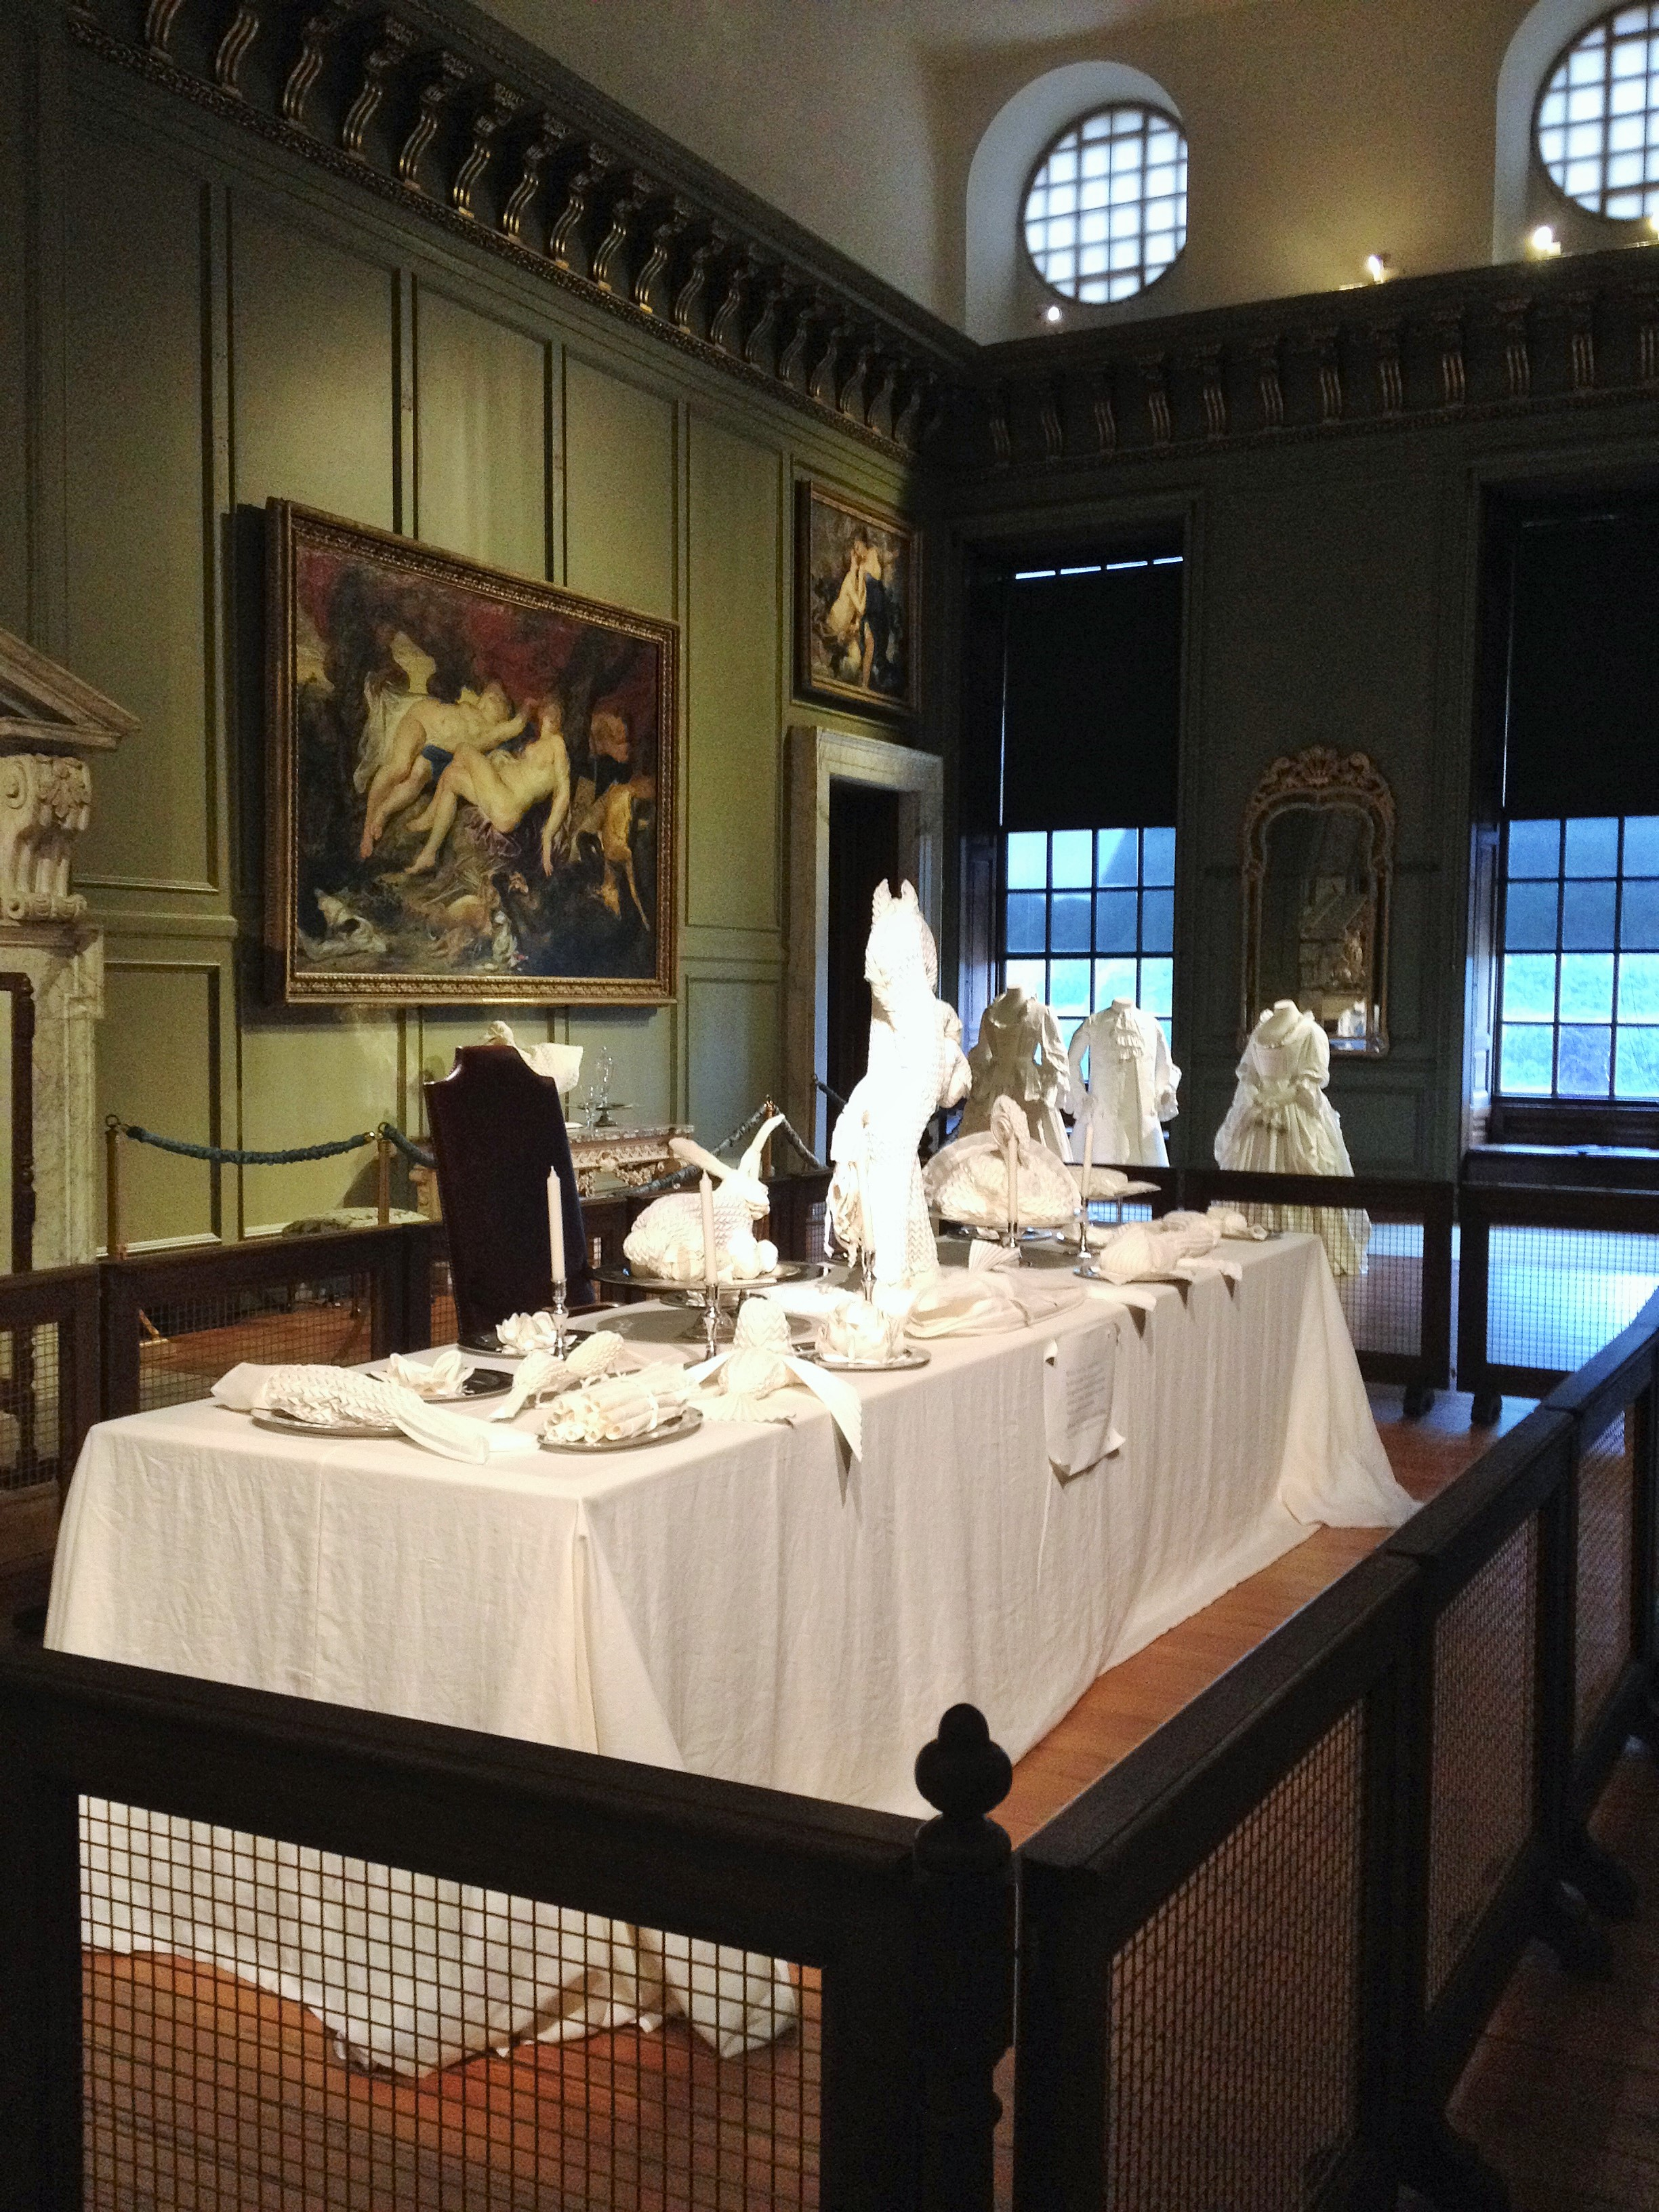 Day 4 in England- Hampton Court Palace | Material Matters